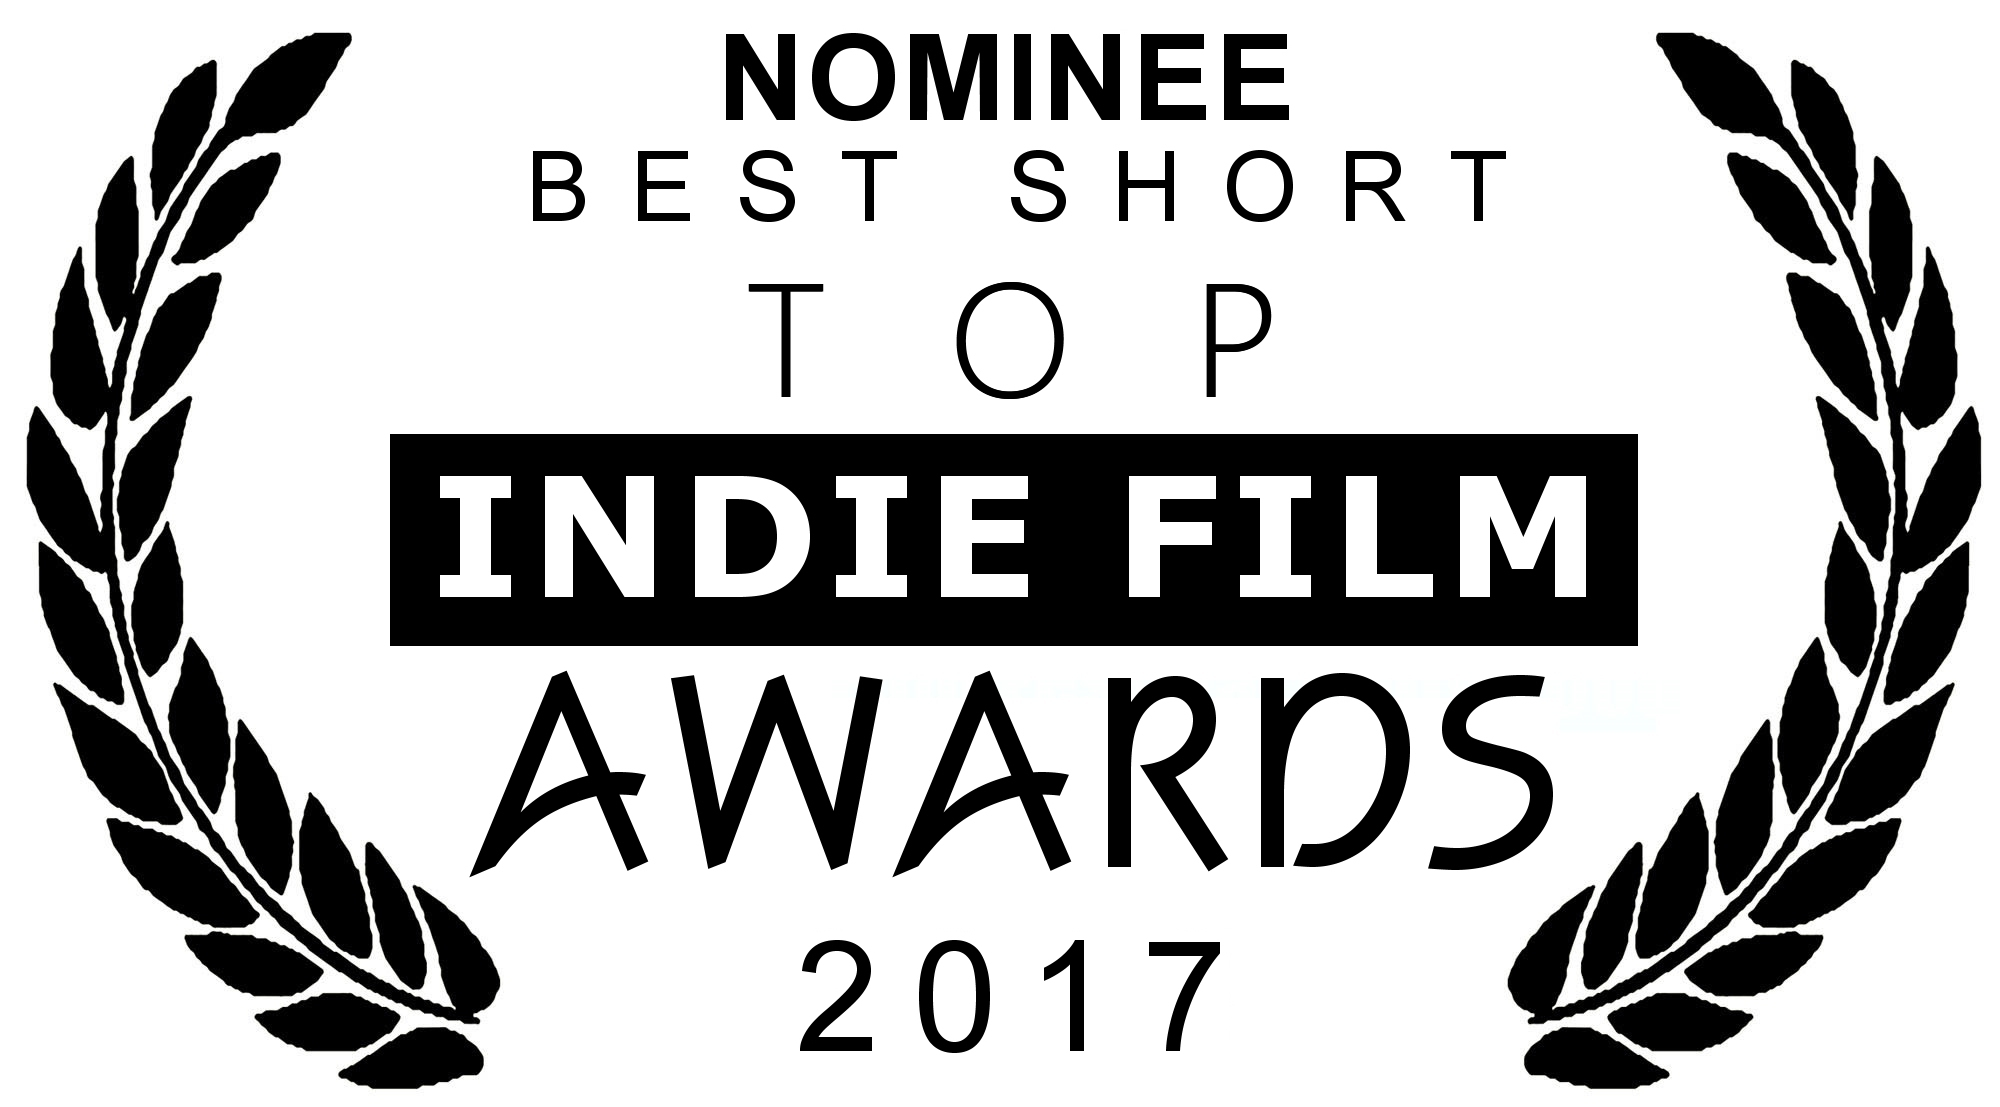 NOMINEE BEST SHORT Top Indie Film Awards 2017